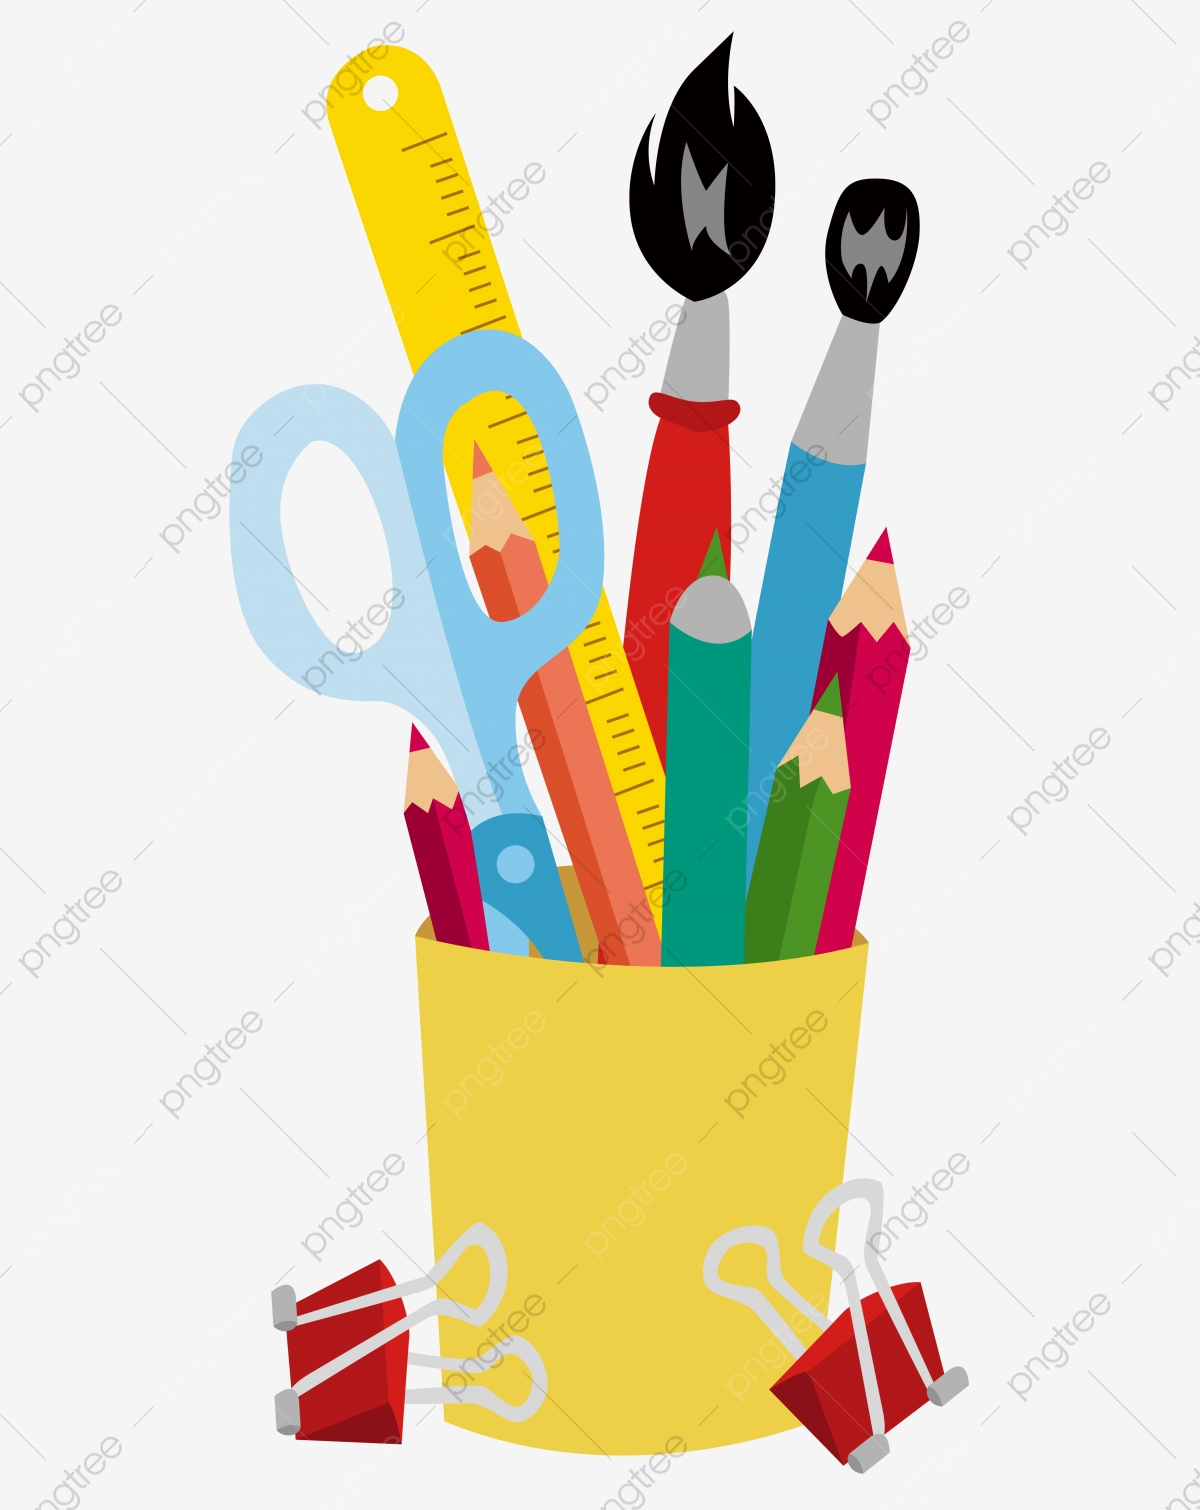 cartoon vector stationery cute pen holder cartoon vector stationery cute pen holder writing homework png and vector with transparent background for free download https pngtree com freepng cartoon vector stationery cute pen holder 4749835 html